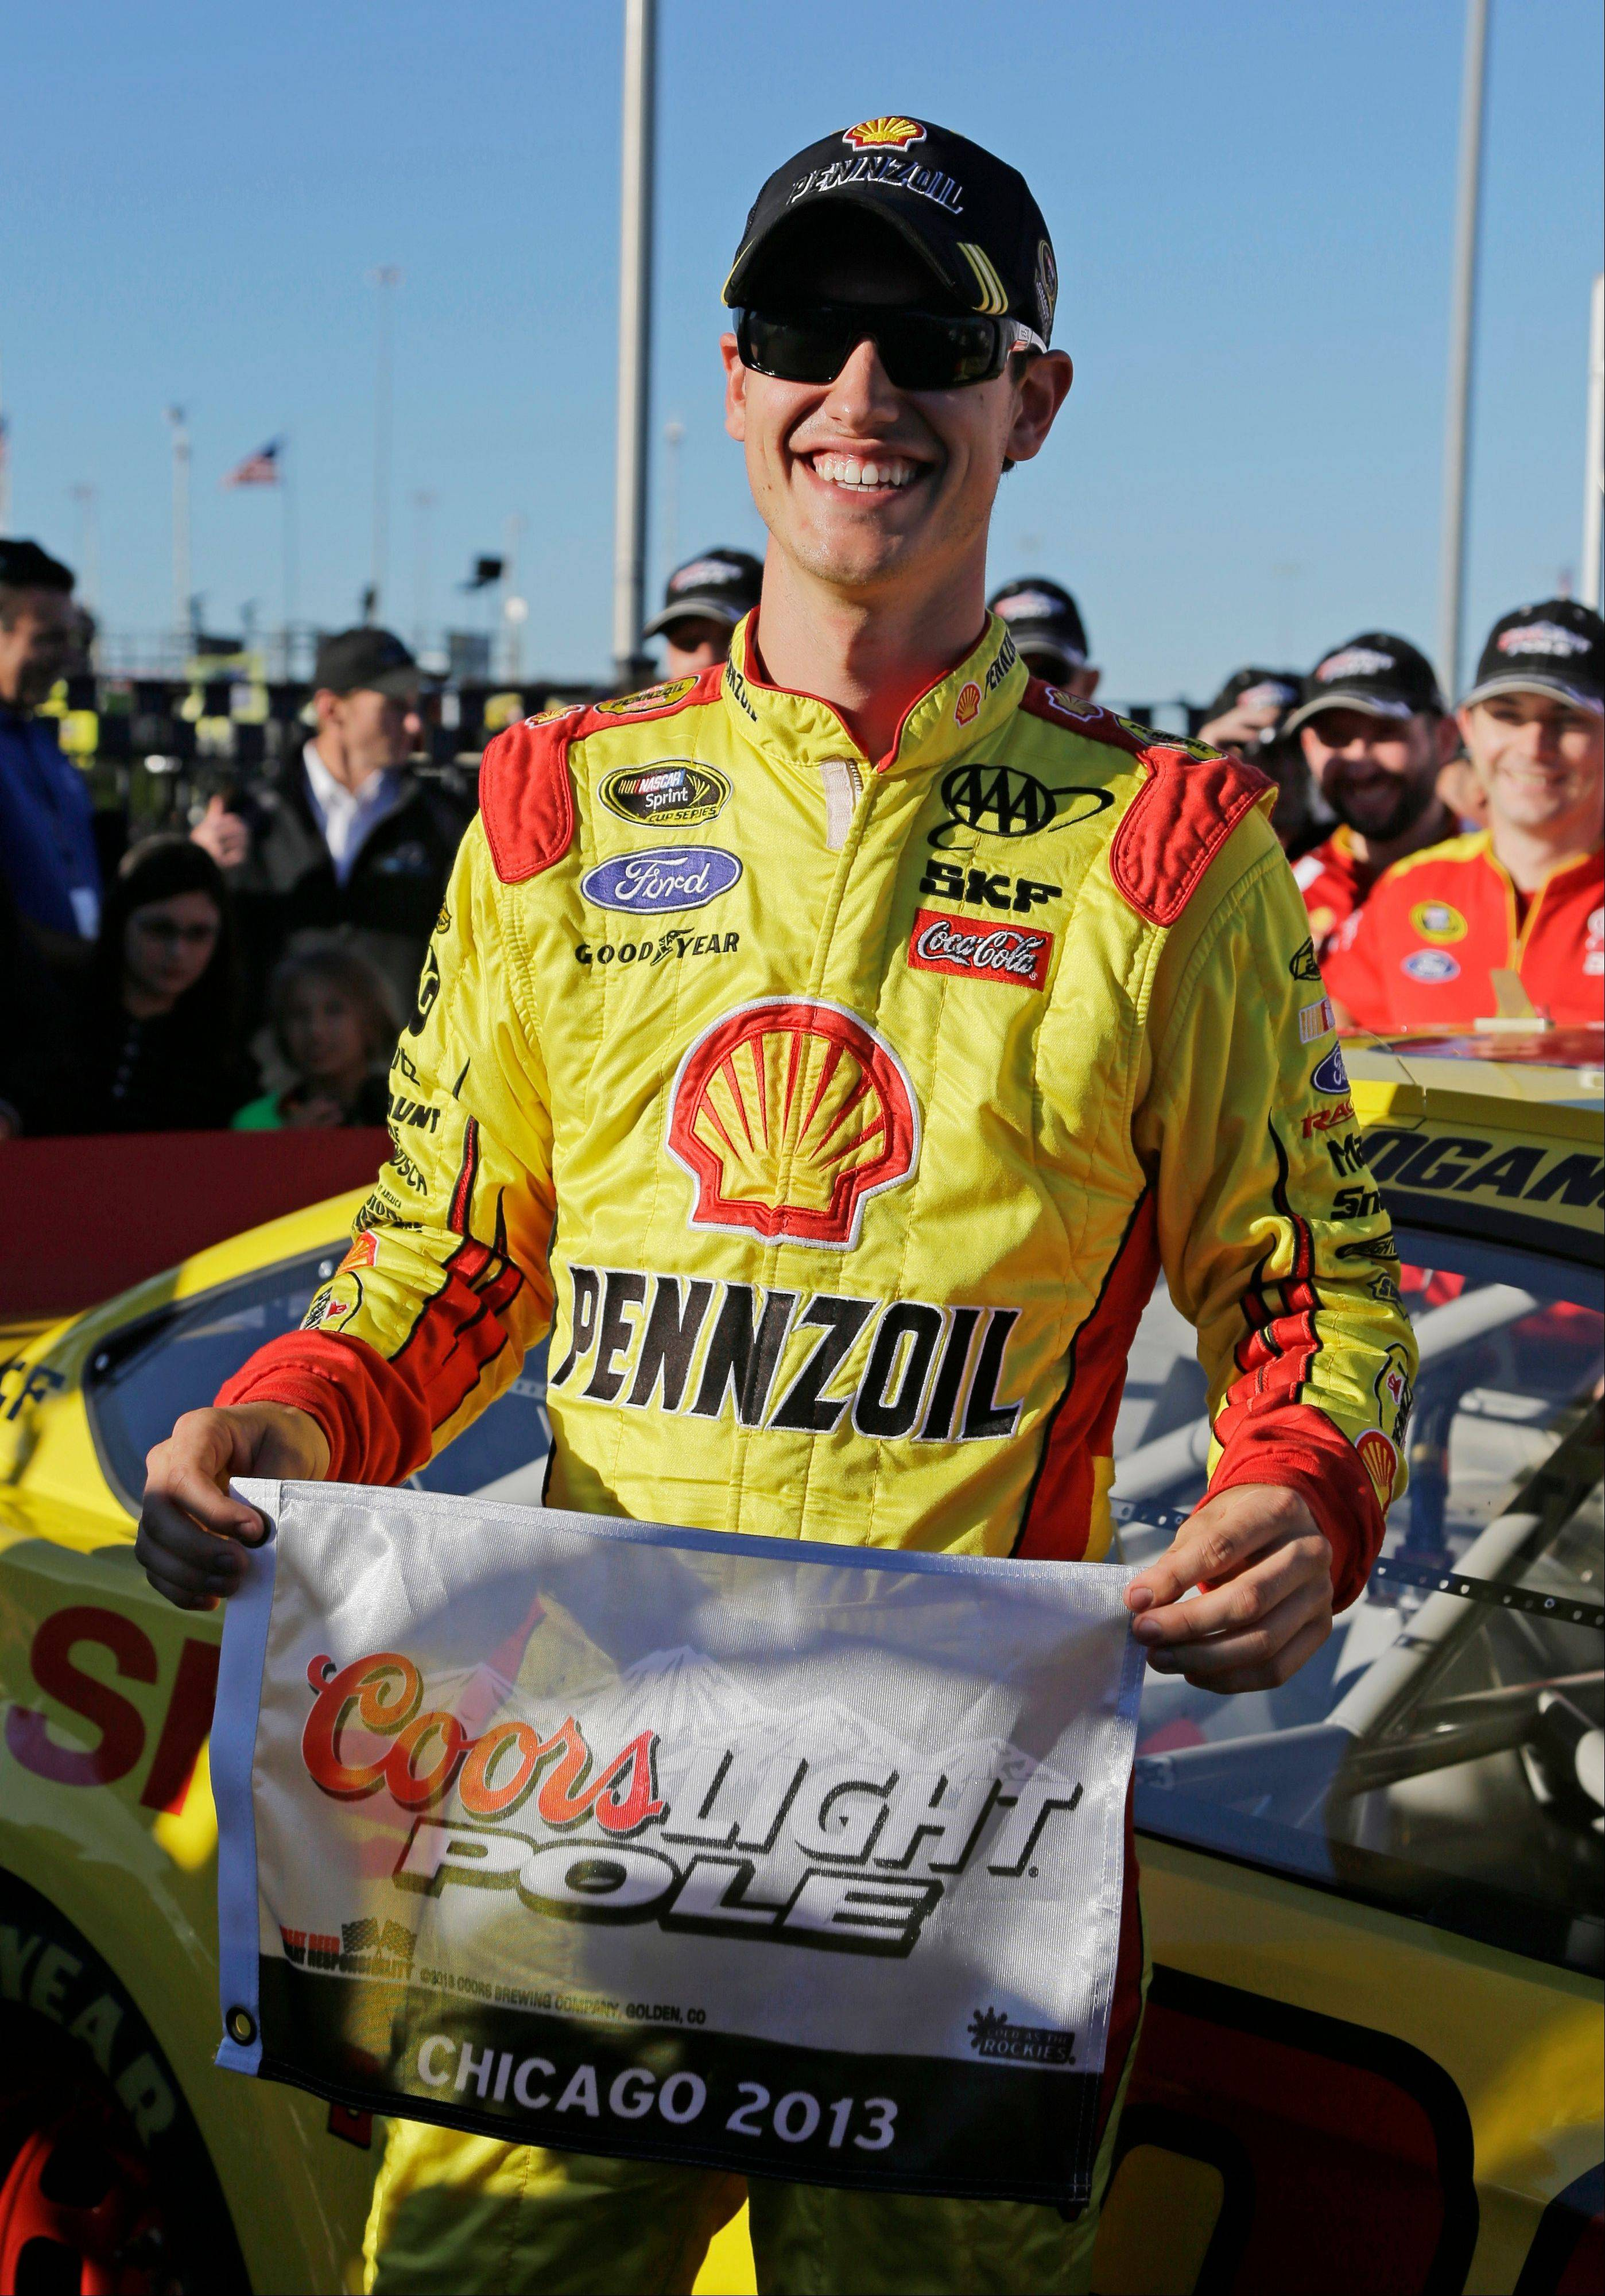 Joey Logano smiles after winning the pole during Friday's qualifying for the Geico 400 auto race Sunday at Chicagoland Speedway in Joliet